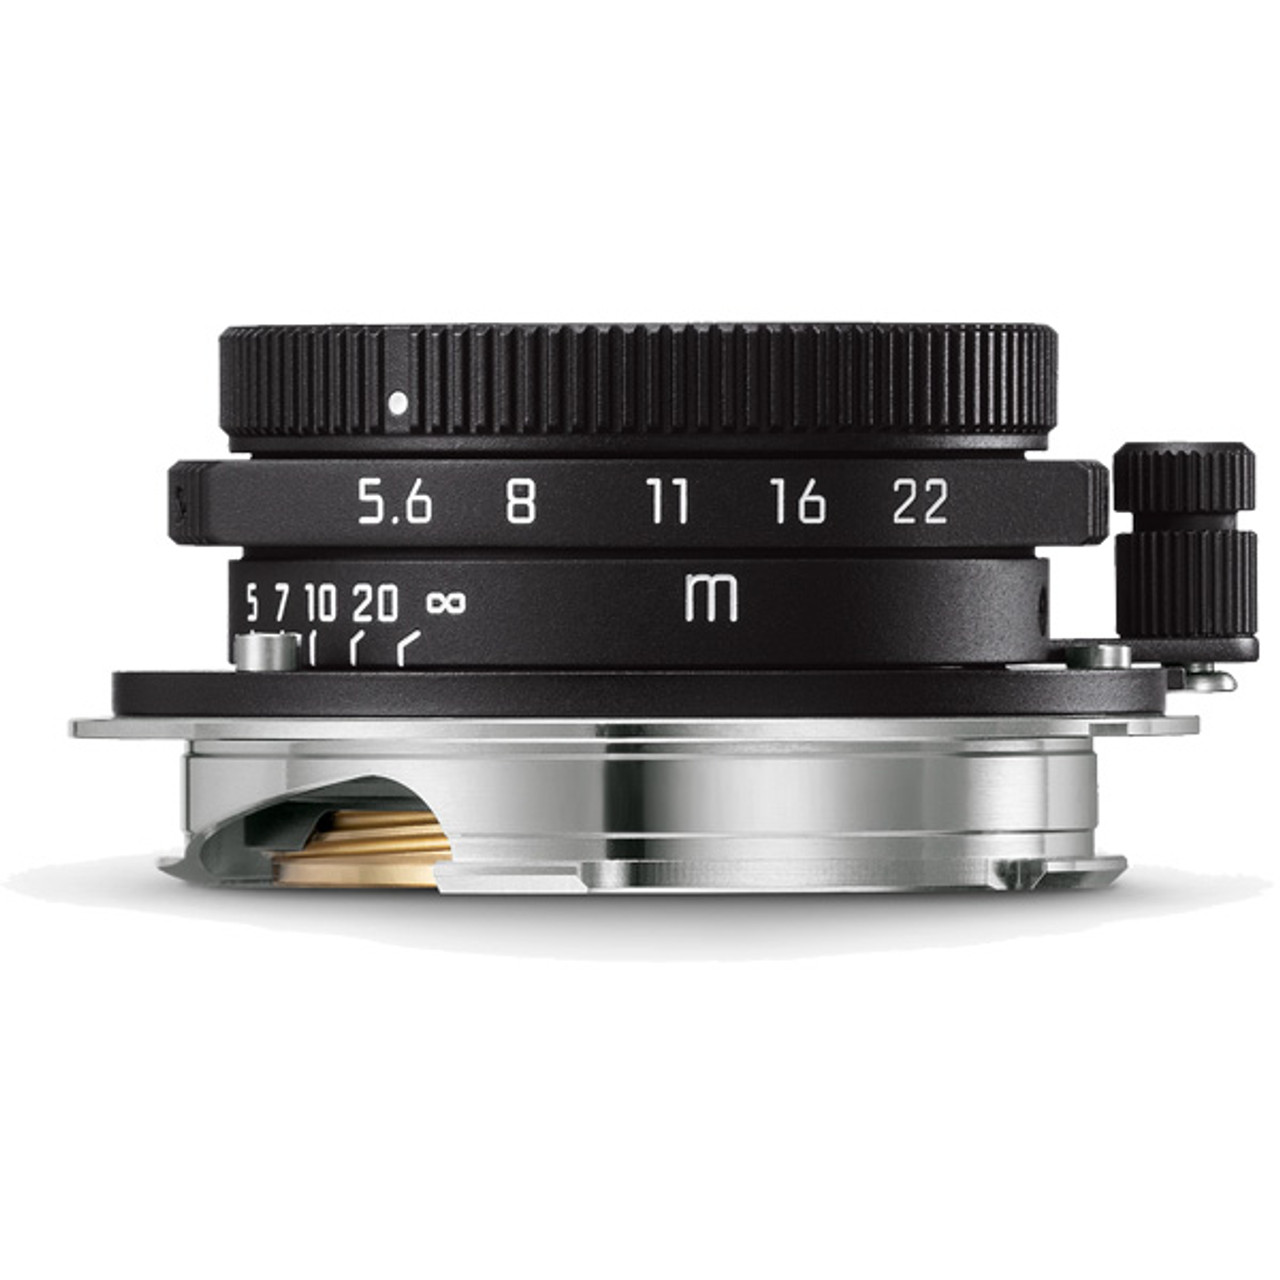 Leica Summaron-M 28 mm f/5.6 (matte black paint finish)